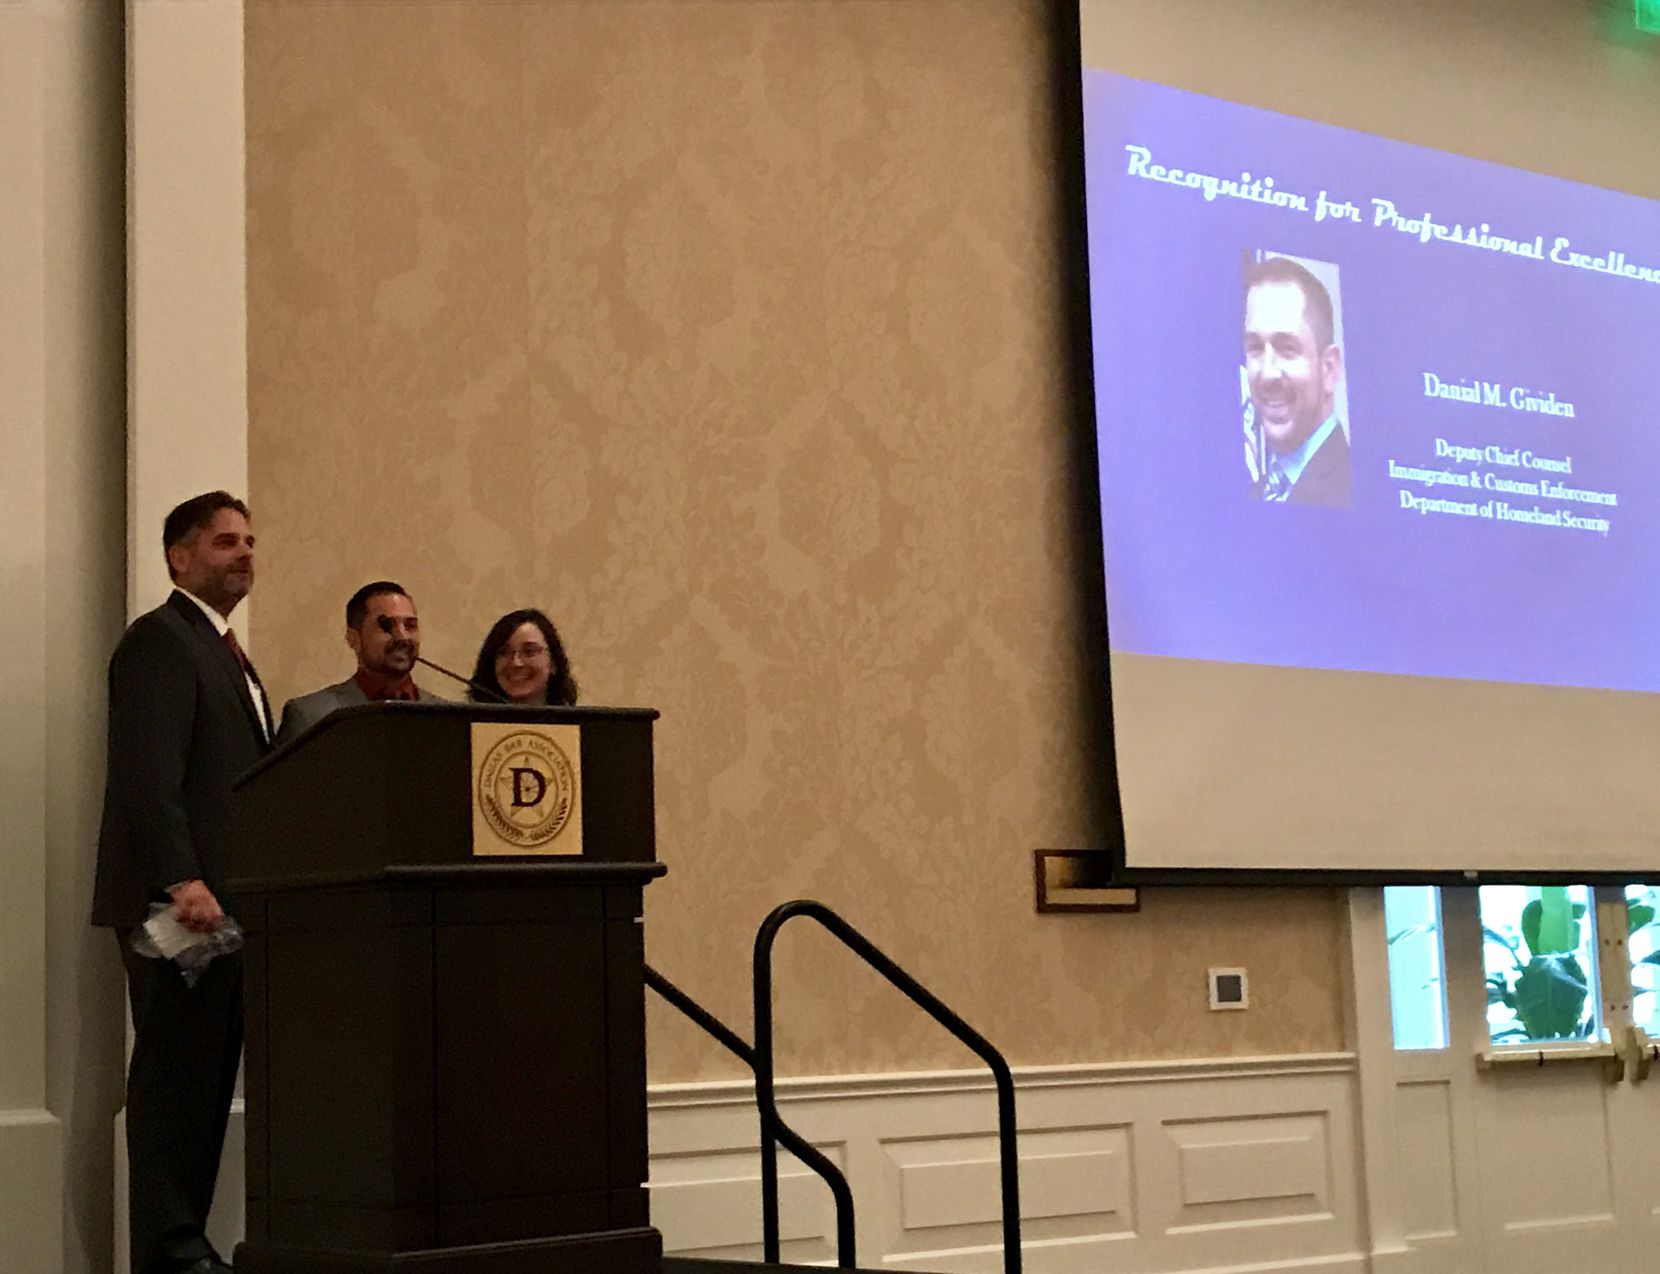 David Metzler (left) and Angela Lopez stand with Danial Gividen, the deputy chief counsel of ICE's Dallas regional office, who was recognized for professional excellence at the  Dallas Bar Association luncheon.